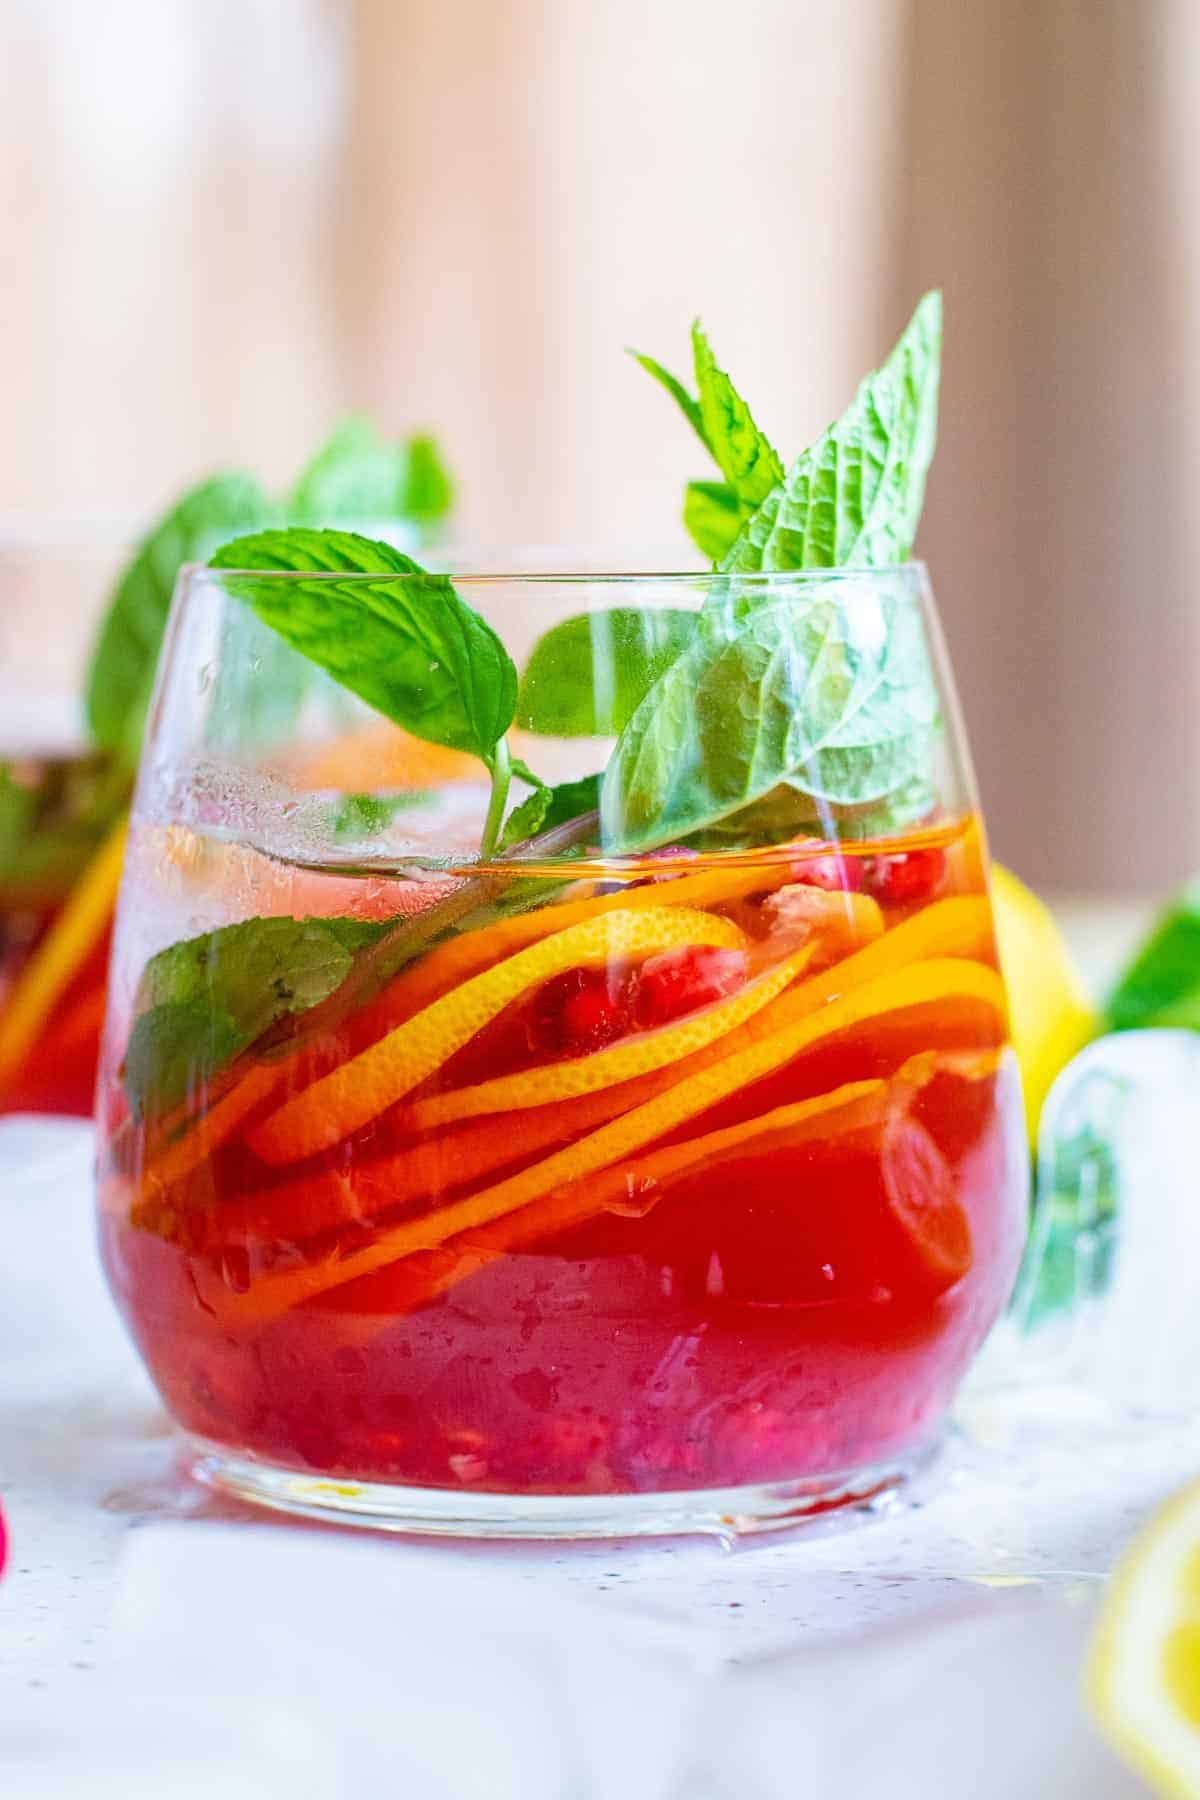 Close up view of stemless glass with bright red drink with pomegranate arils, citrus slices, and fresh mint leaves.